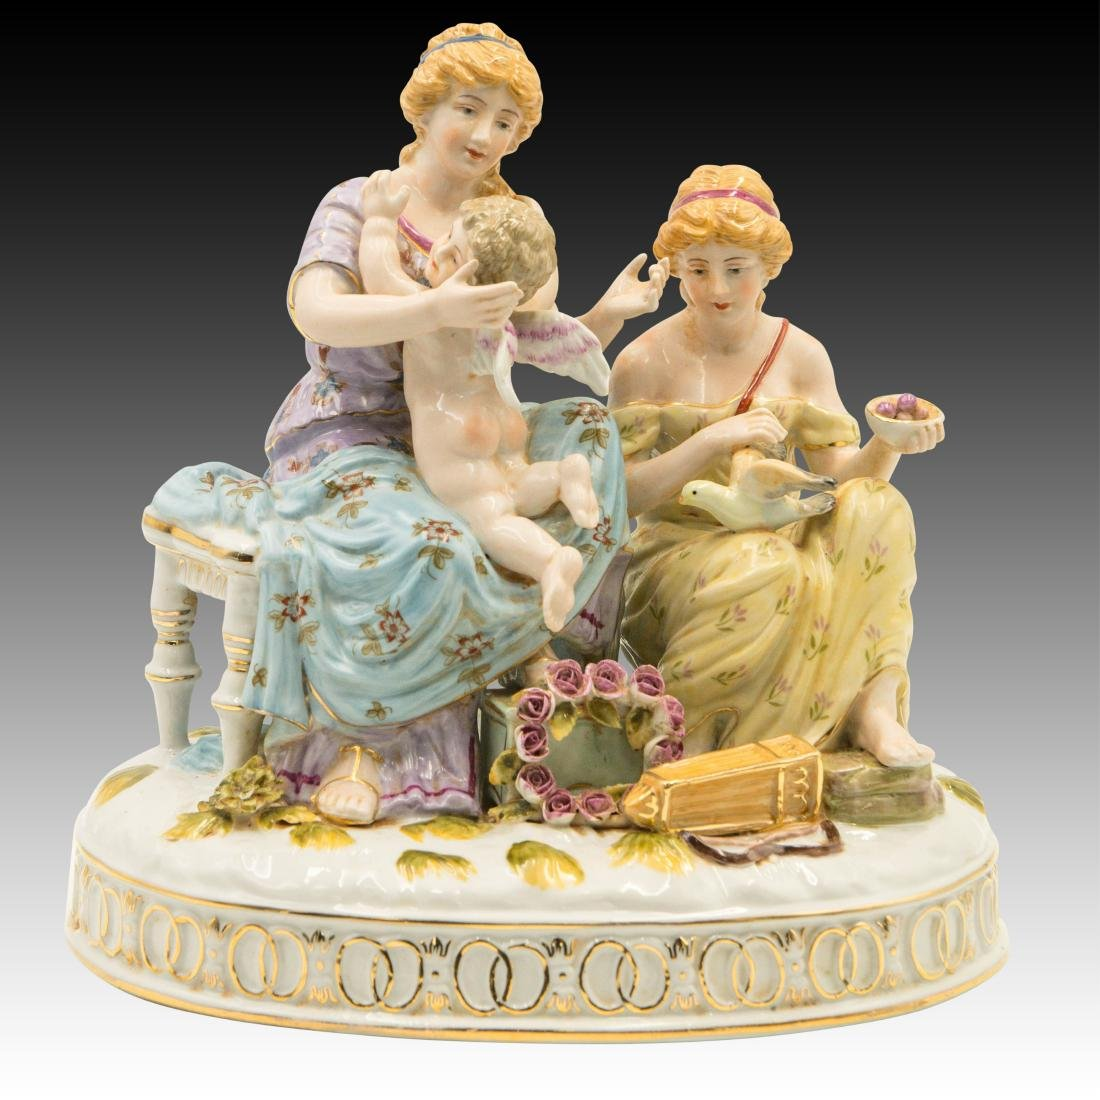 Two Women and a Cherub and Birds Figurine